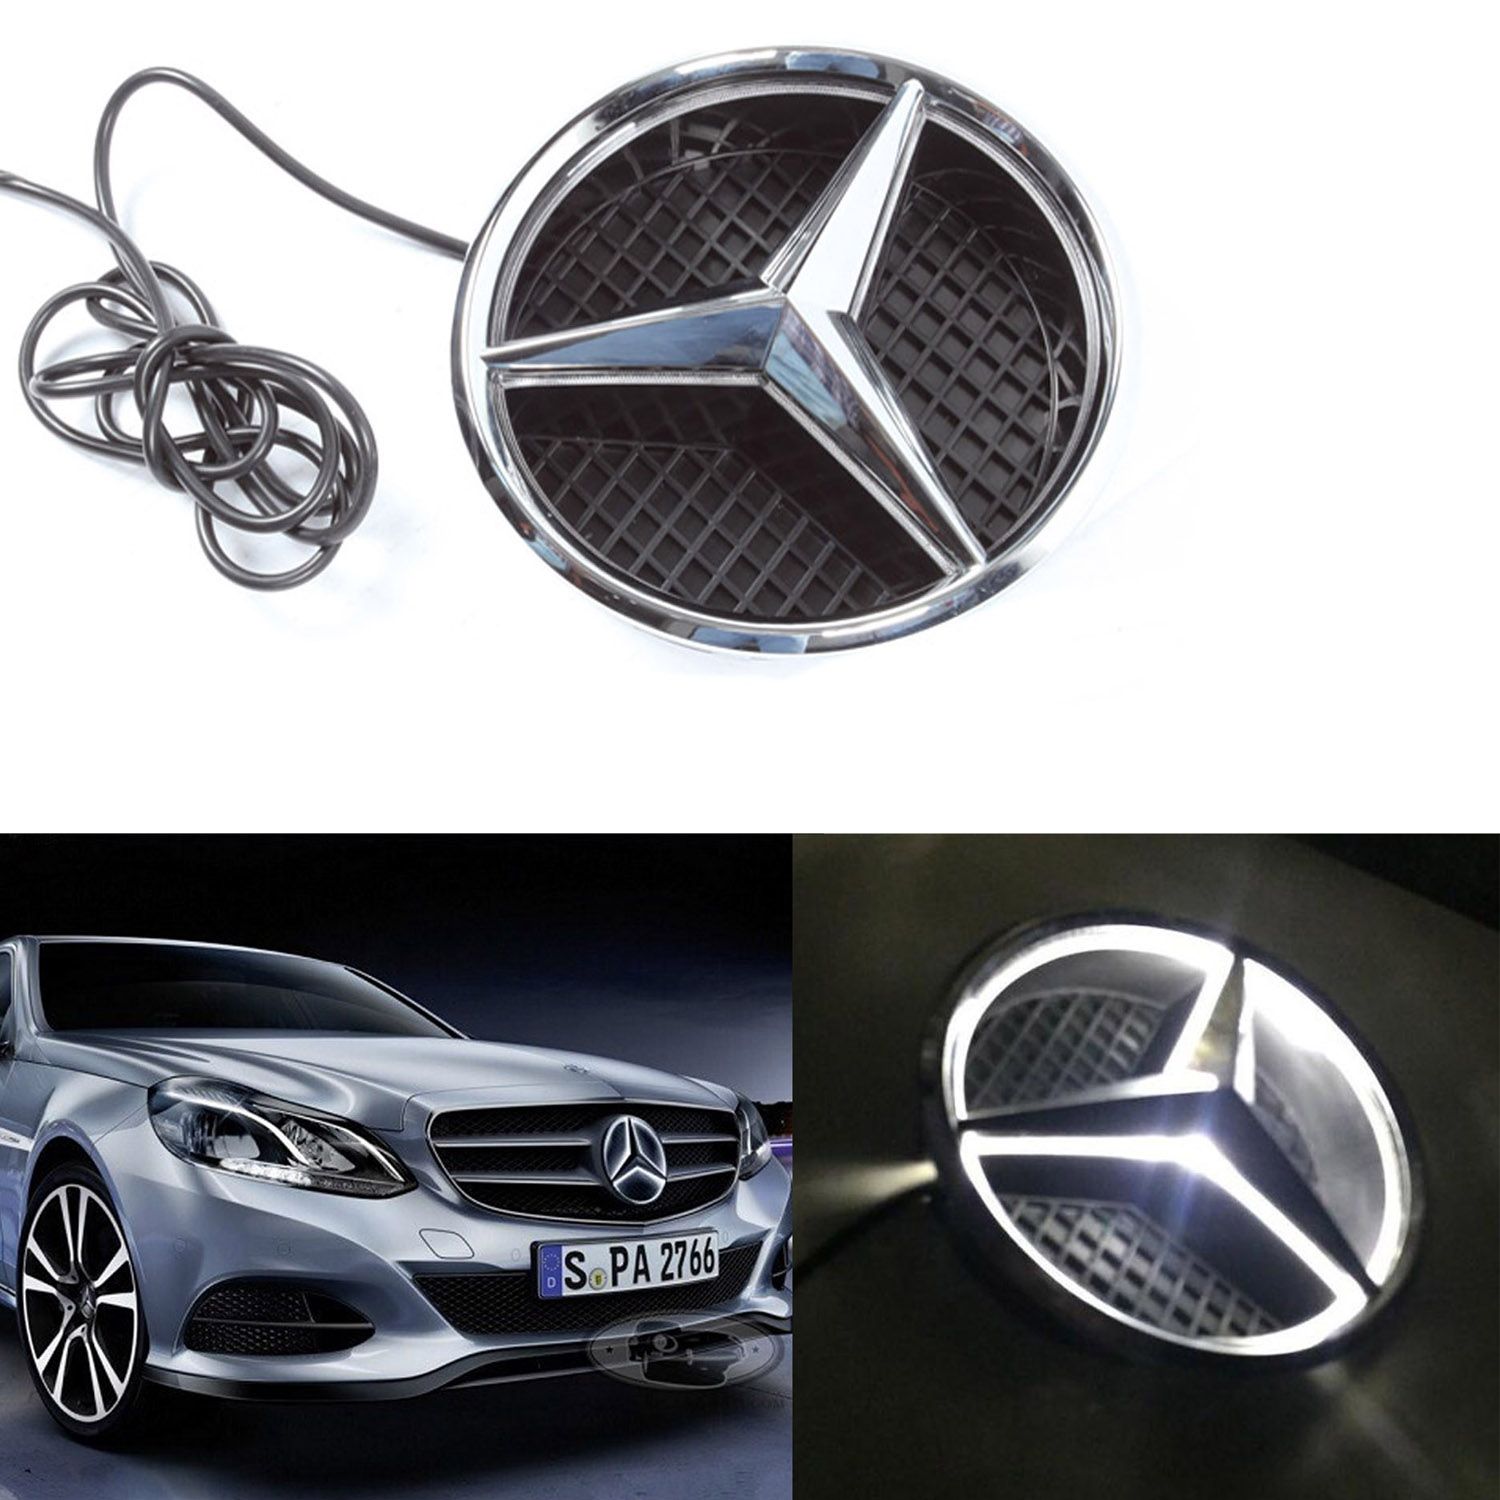 Illuminated led light front grille grill star emblem for for Mercedes benz symbol light